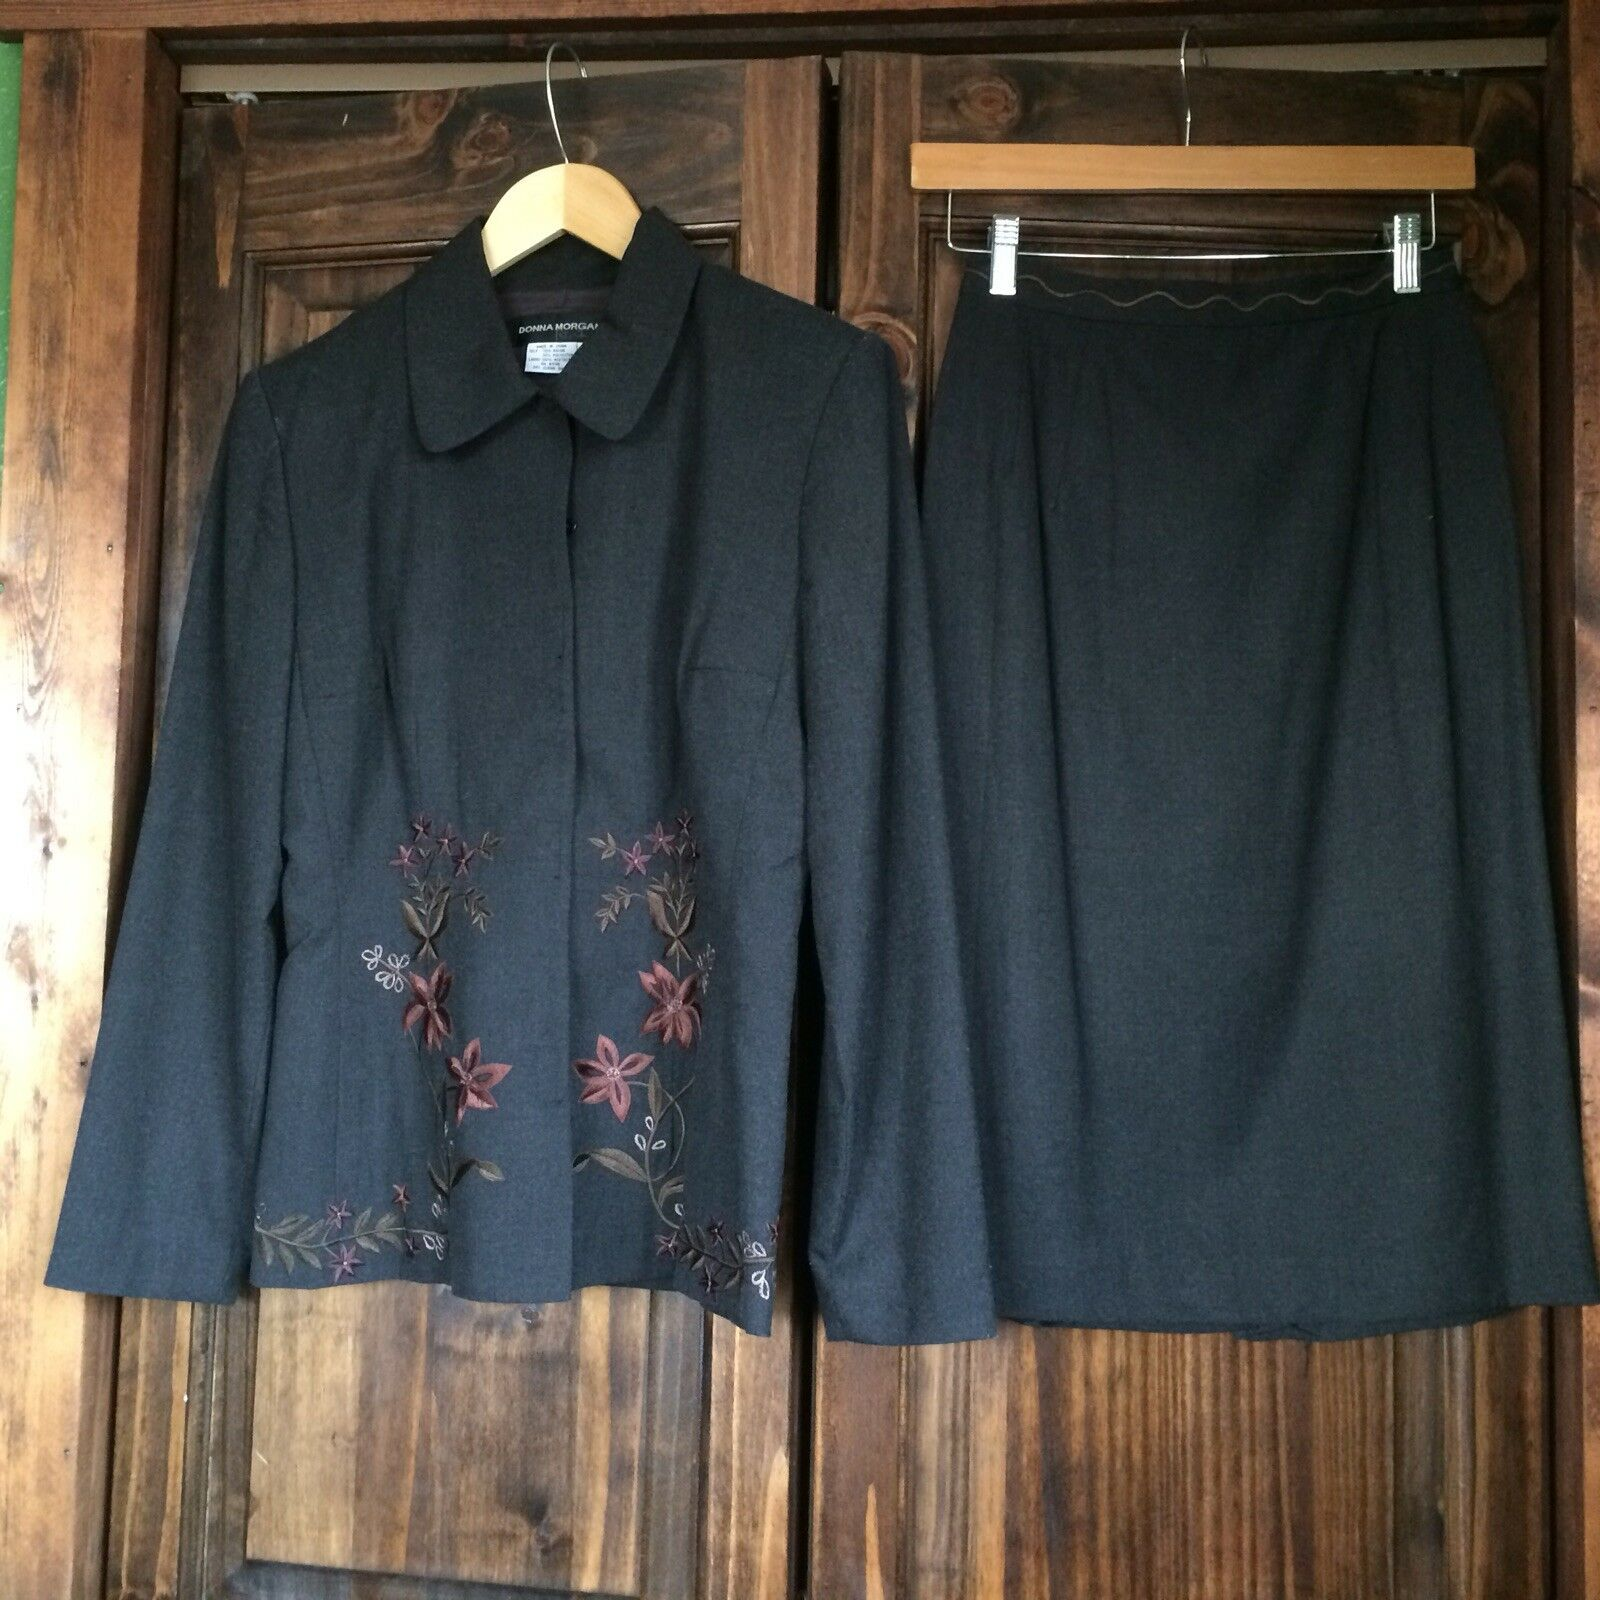 women Morgan Women's 2 Piece Skirt Suit Blazer Embroidered Size 6 Fully Lined